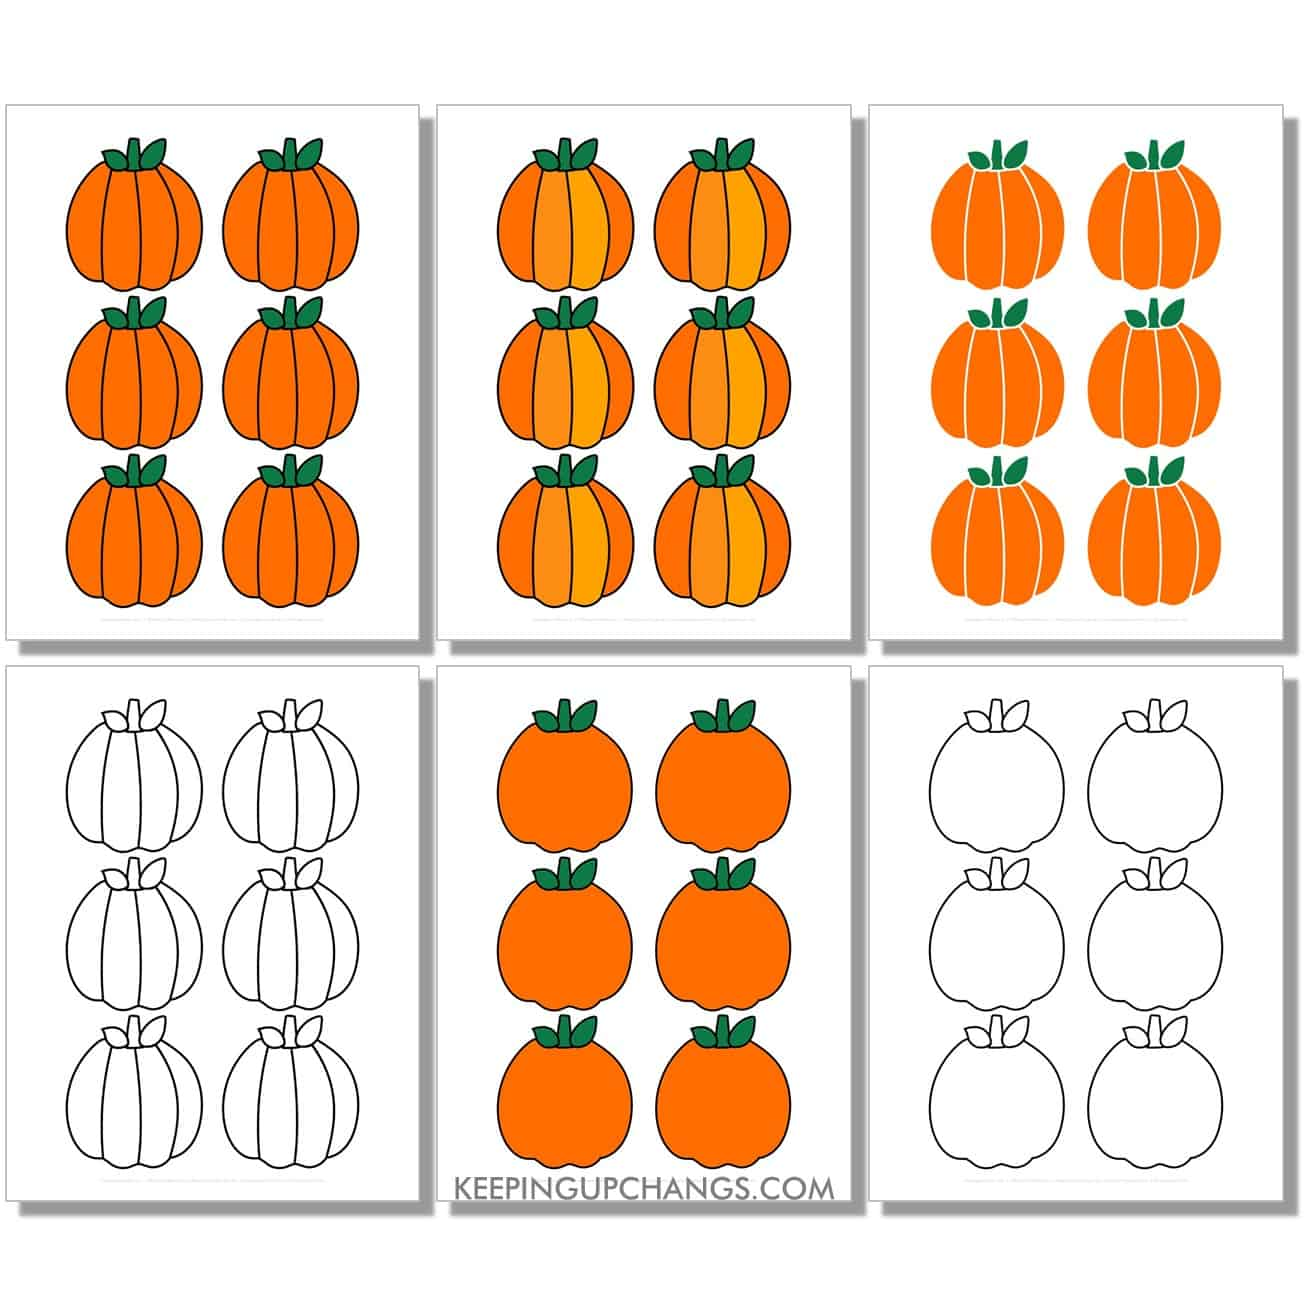 free mini round pumpkin in color, black and white, silhouette, 6 to a page.